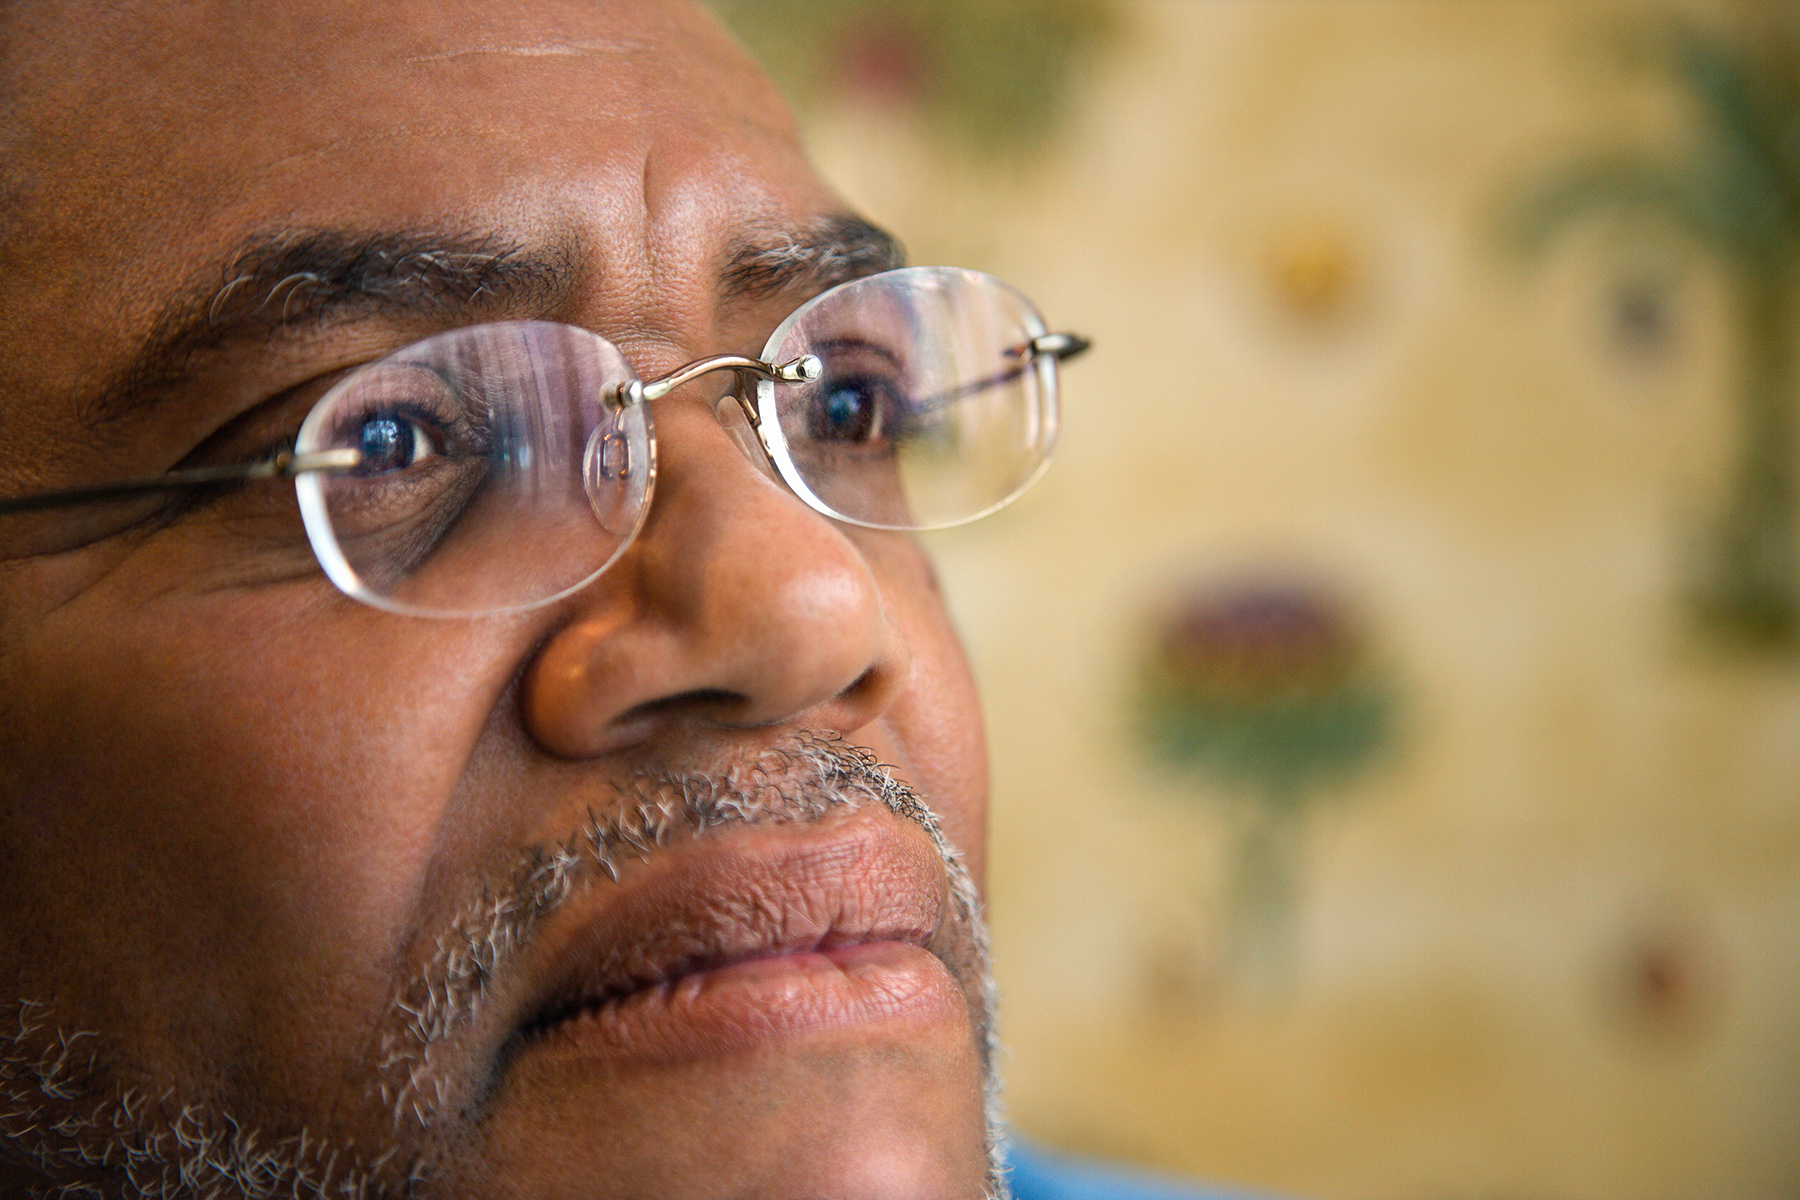 Almost Half of Older Americans Fear Dementia, Try Untested Ways to Fight It